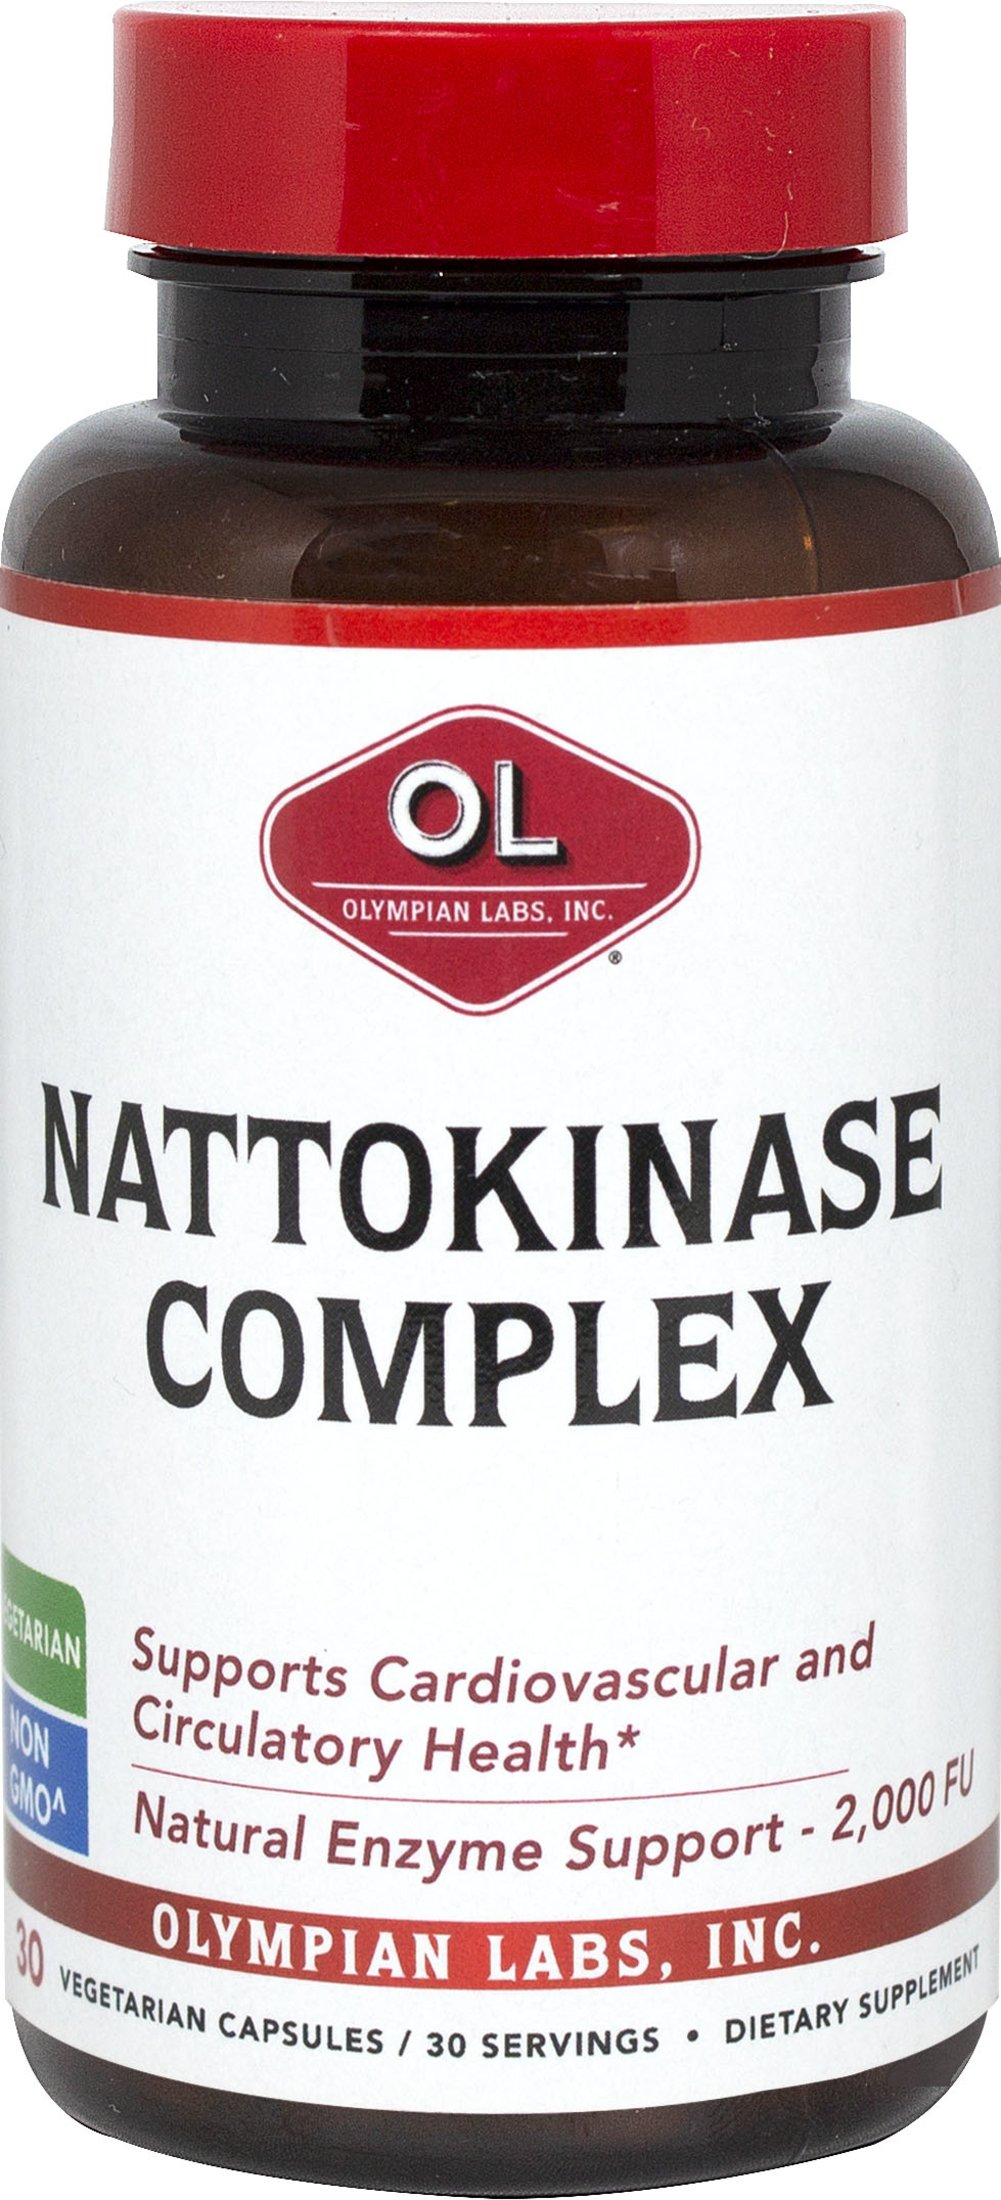 Nattokinase Complex Thumbnail Alternate Bottle View